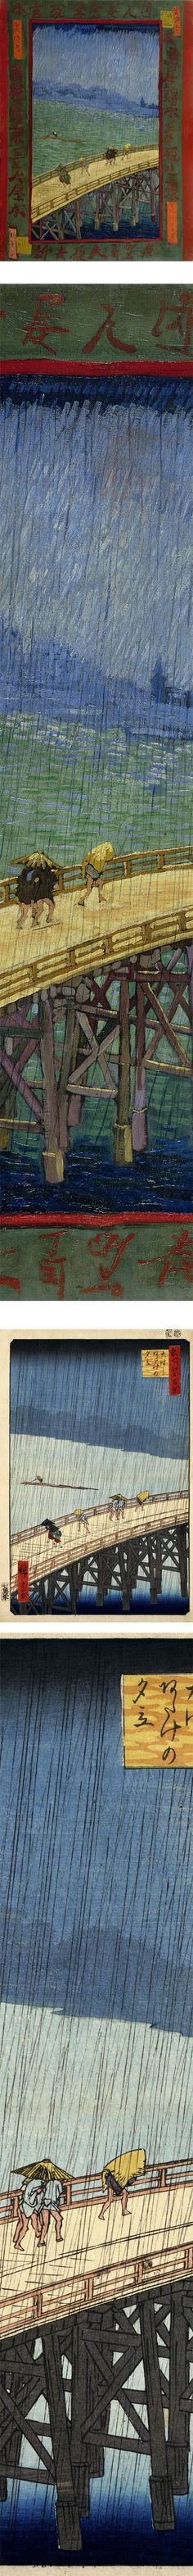 Eye Candy for Today: Van Gogh's painted copy of Hiroshige print